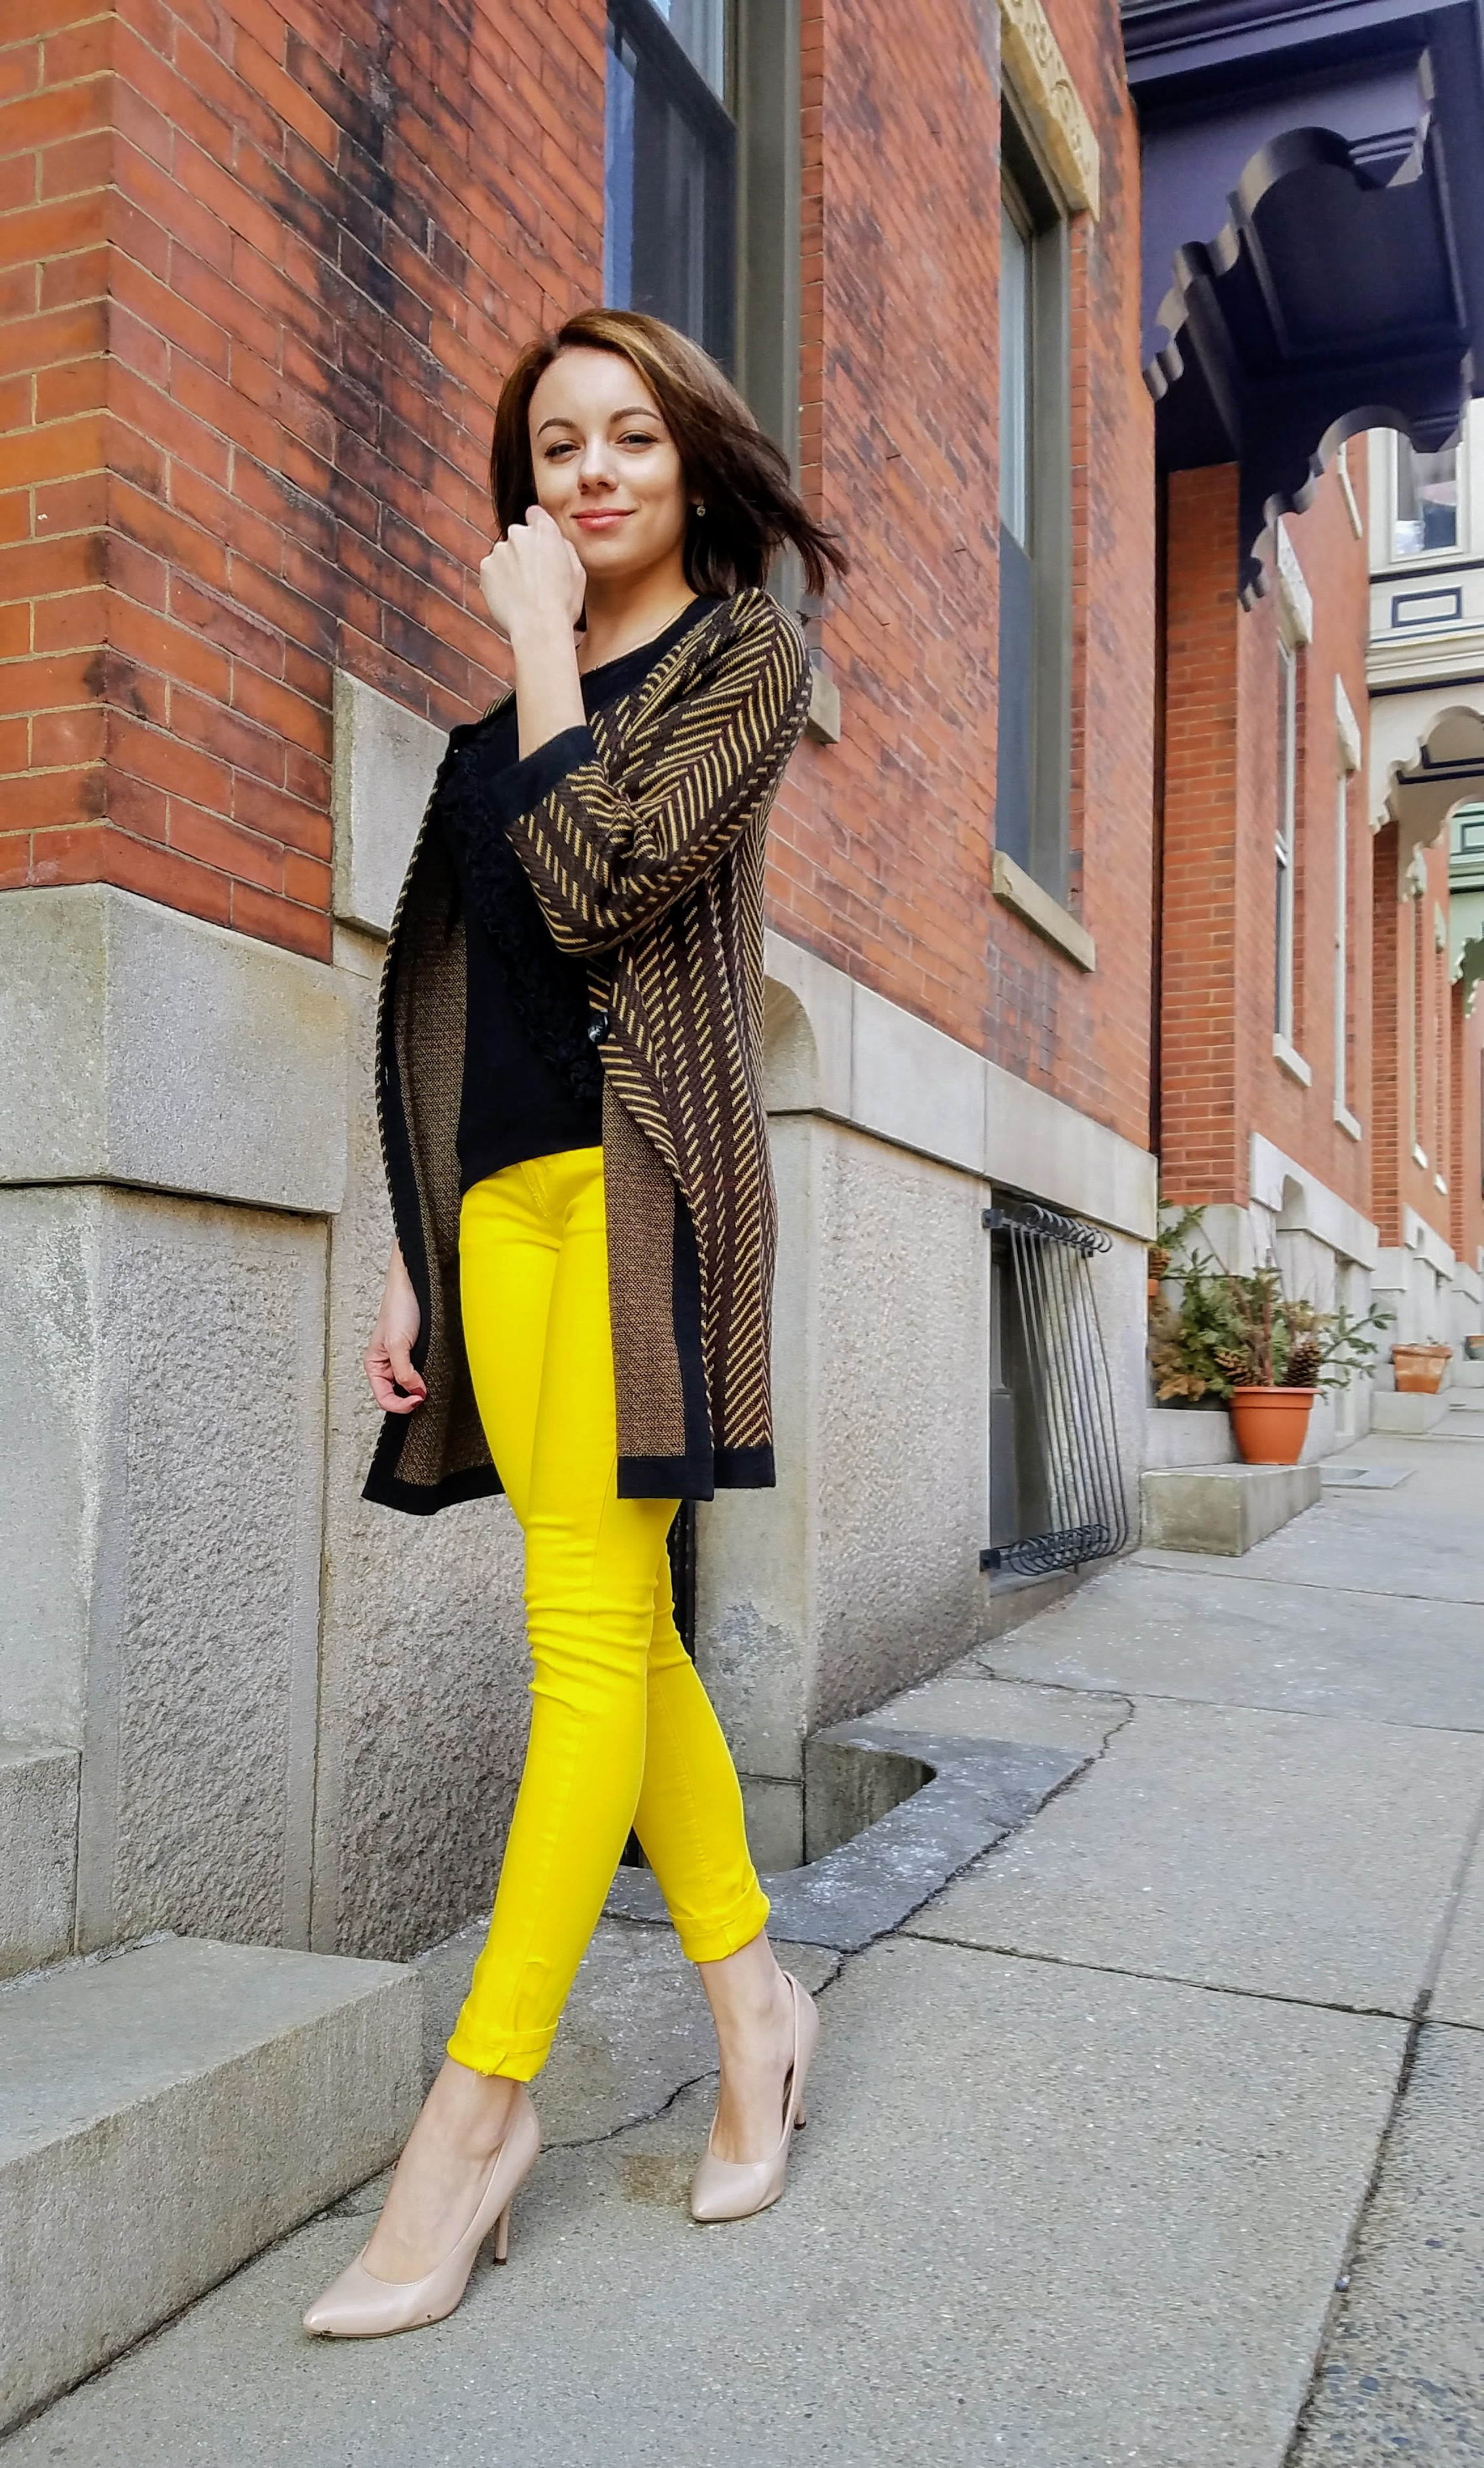 Girl in yellow pants outfit walking down sidewalk for her blog